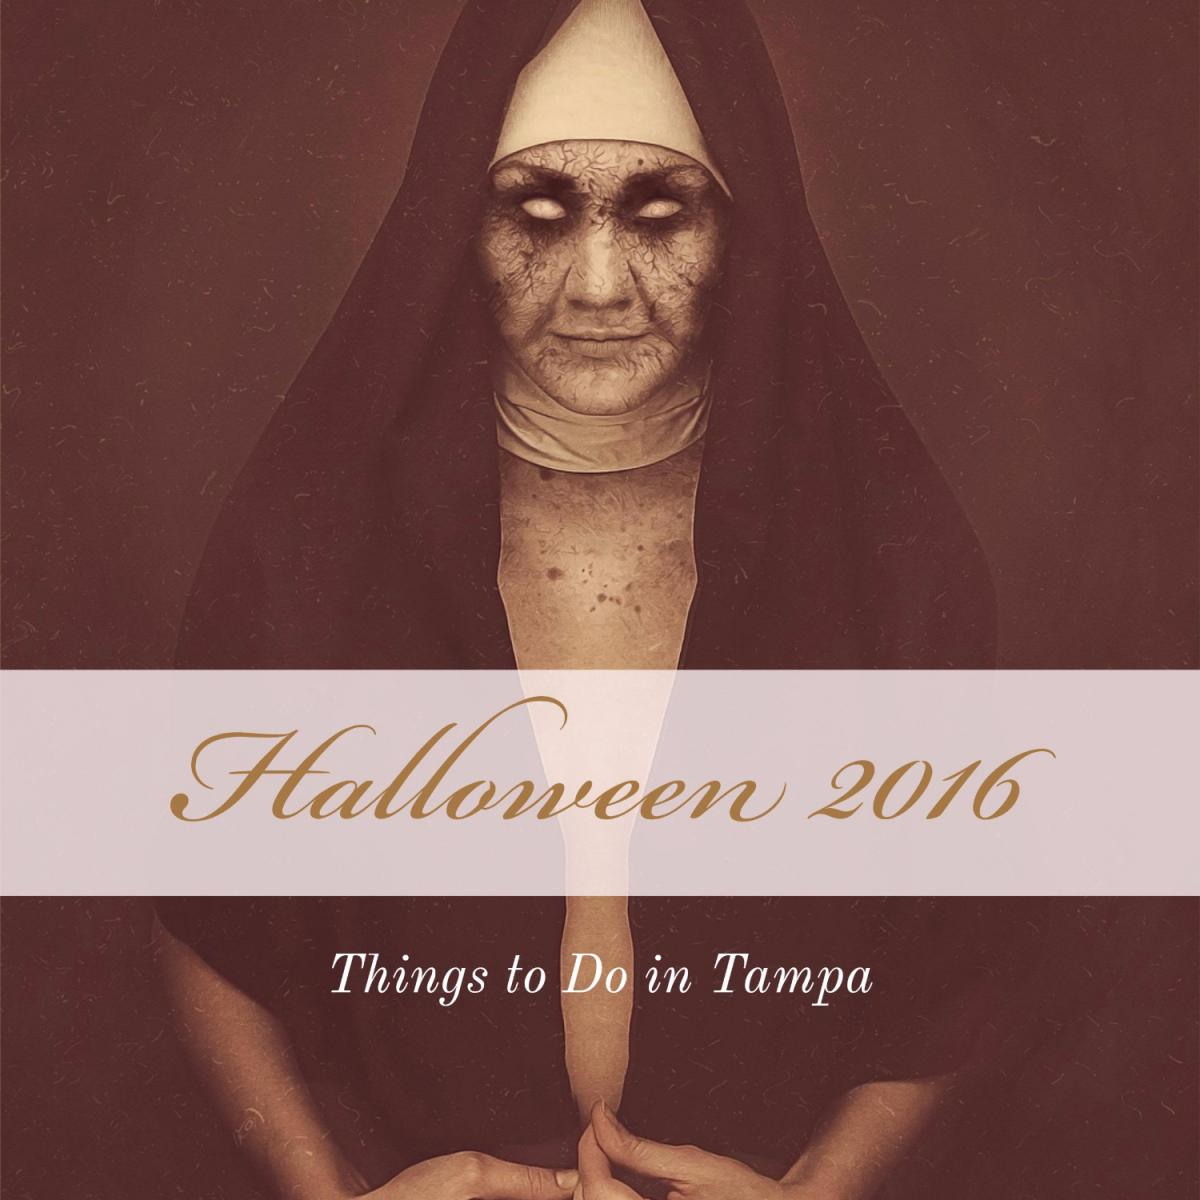 Fun Things to Do This Halloween in Tampa 2016